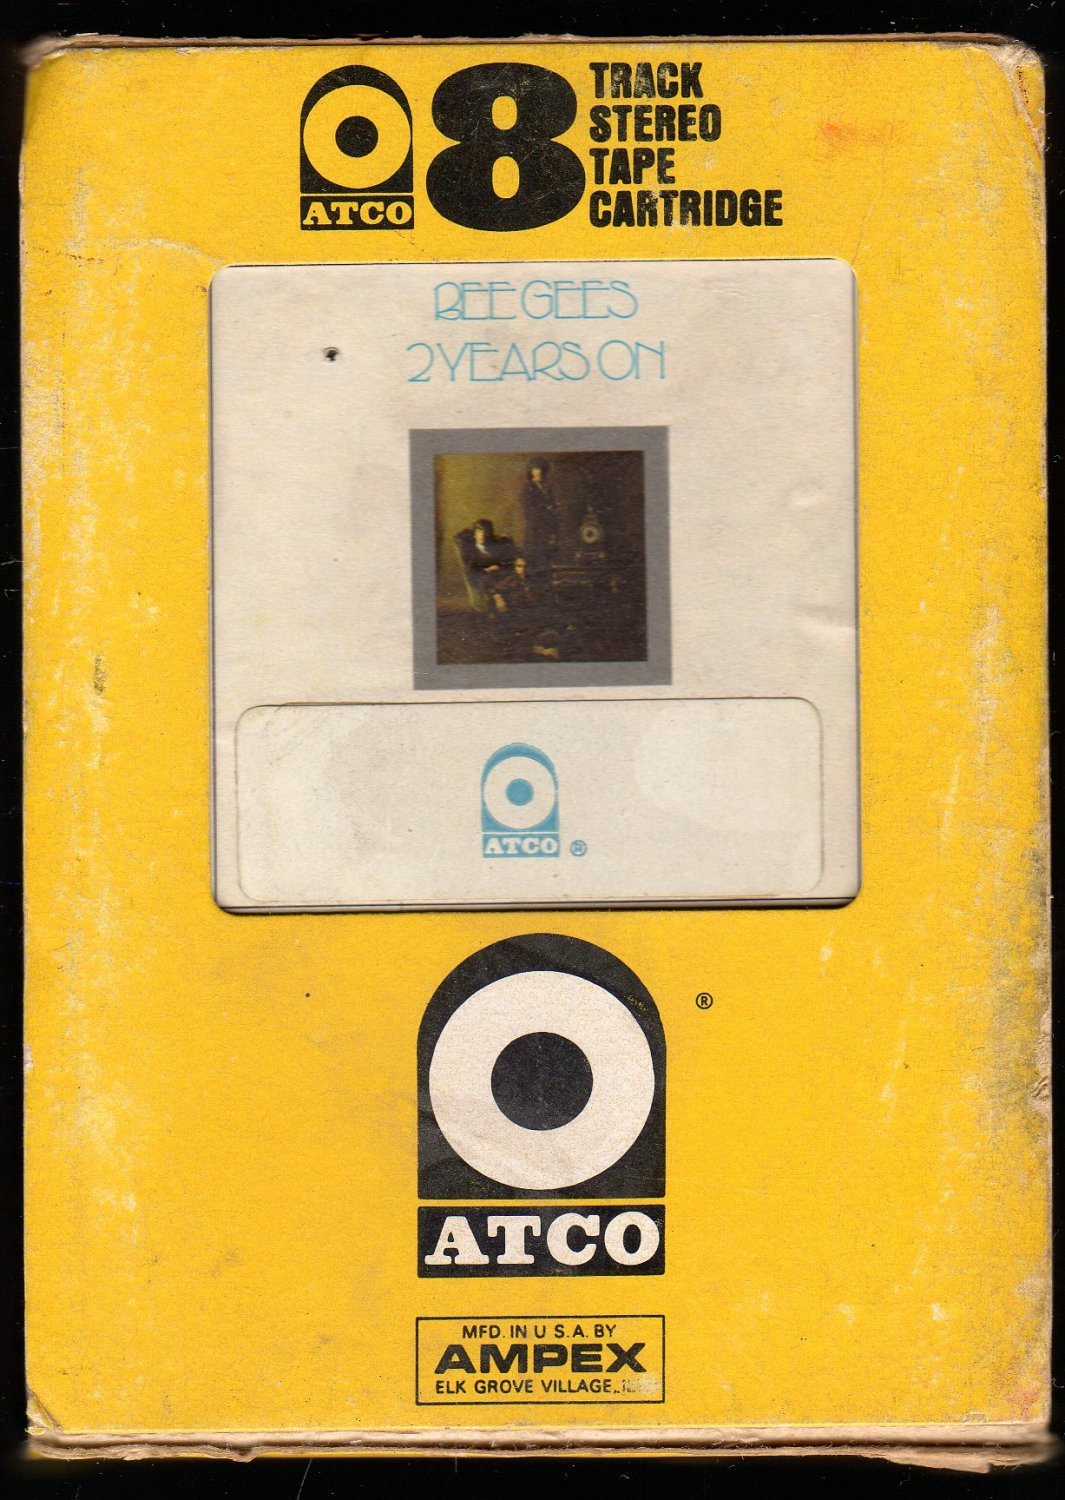 Bee Gees - Two Years On 1970 ATCO AMPEX A32 8-track tape